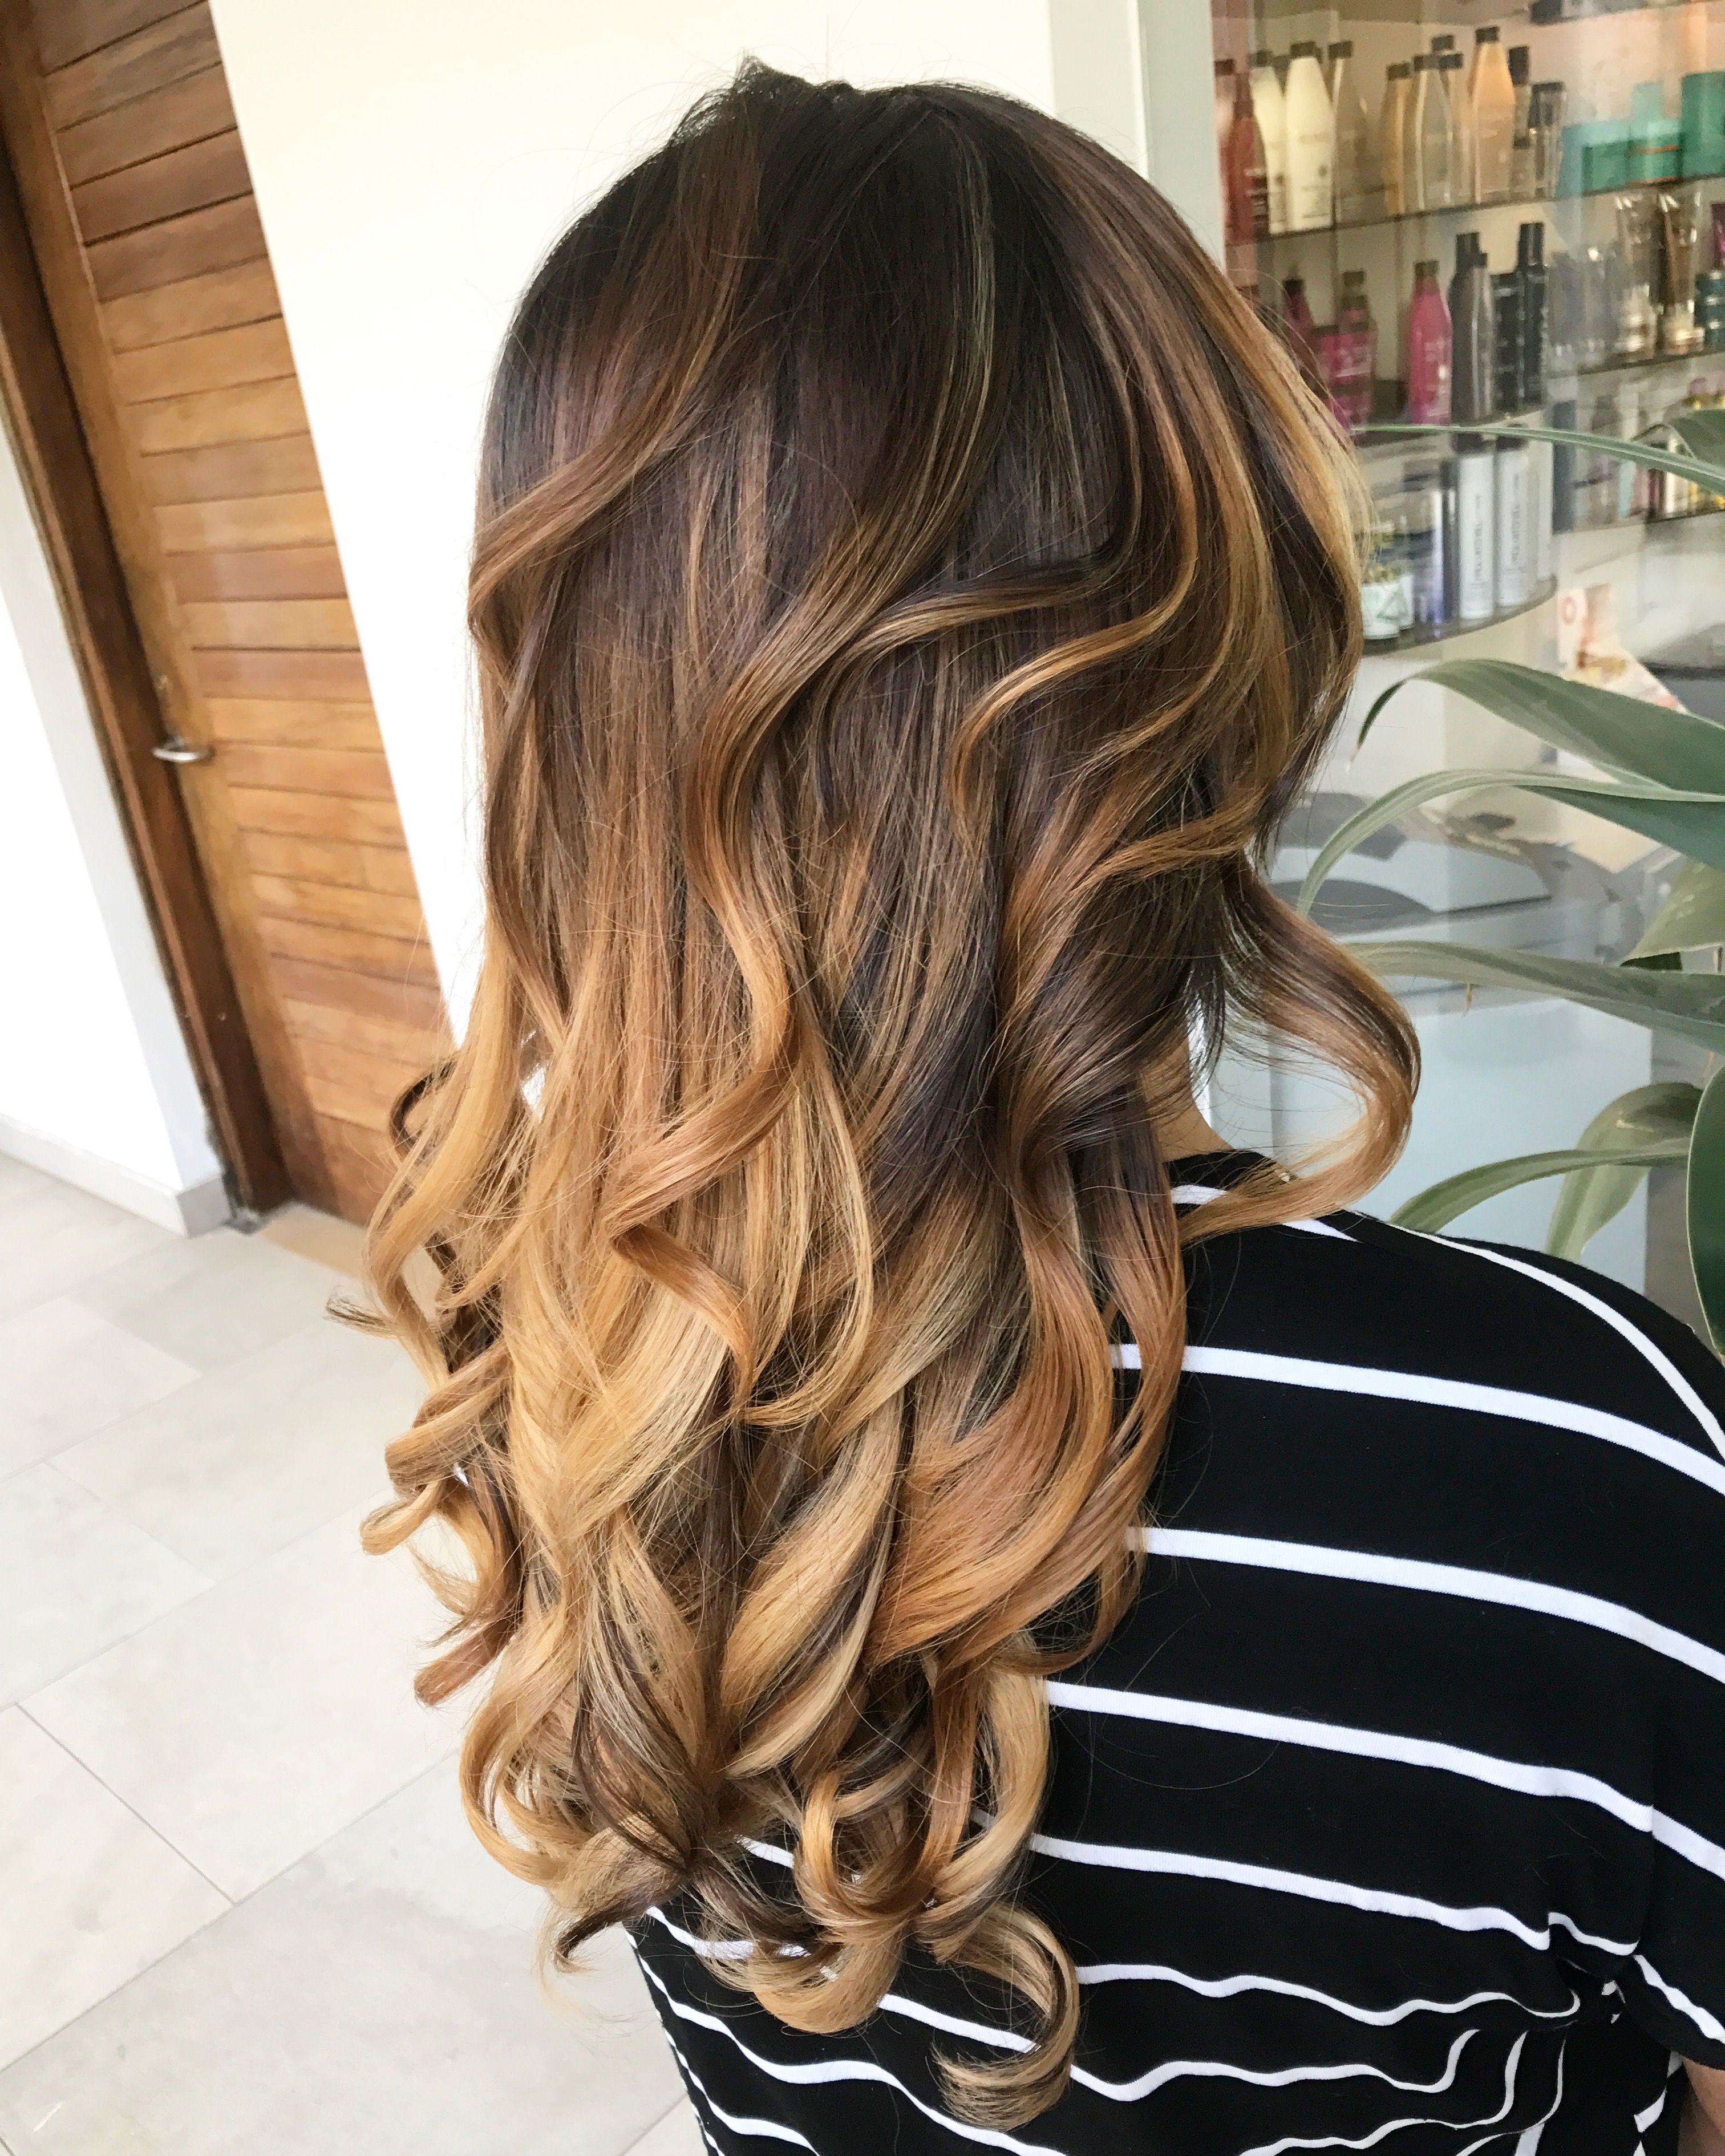 11 Blonde Hair Color Shades For Indian Skin Tones In 2020 Balayage Hair Ash Blonde Balayage Hair Color Balayage